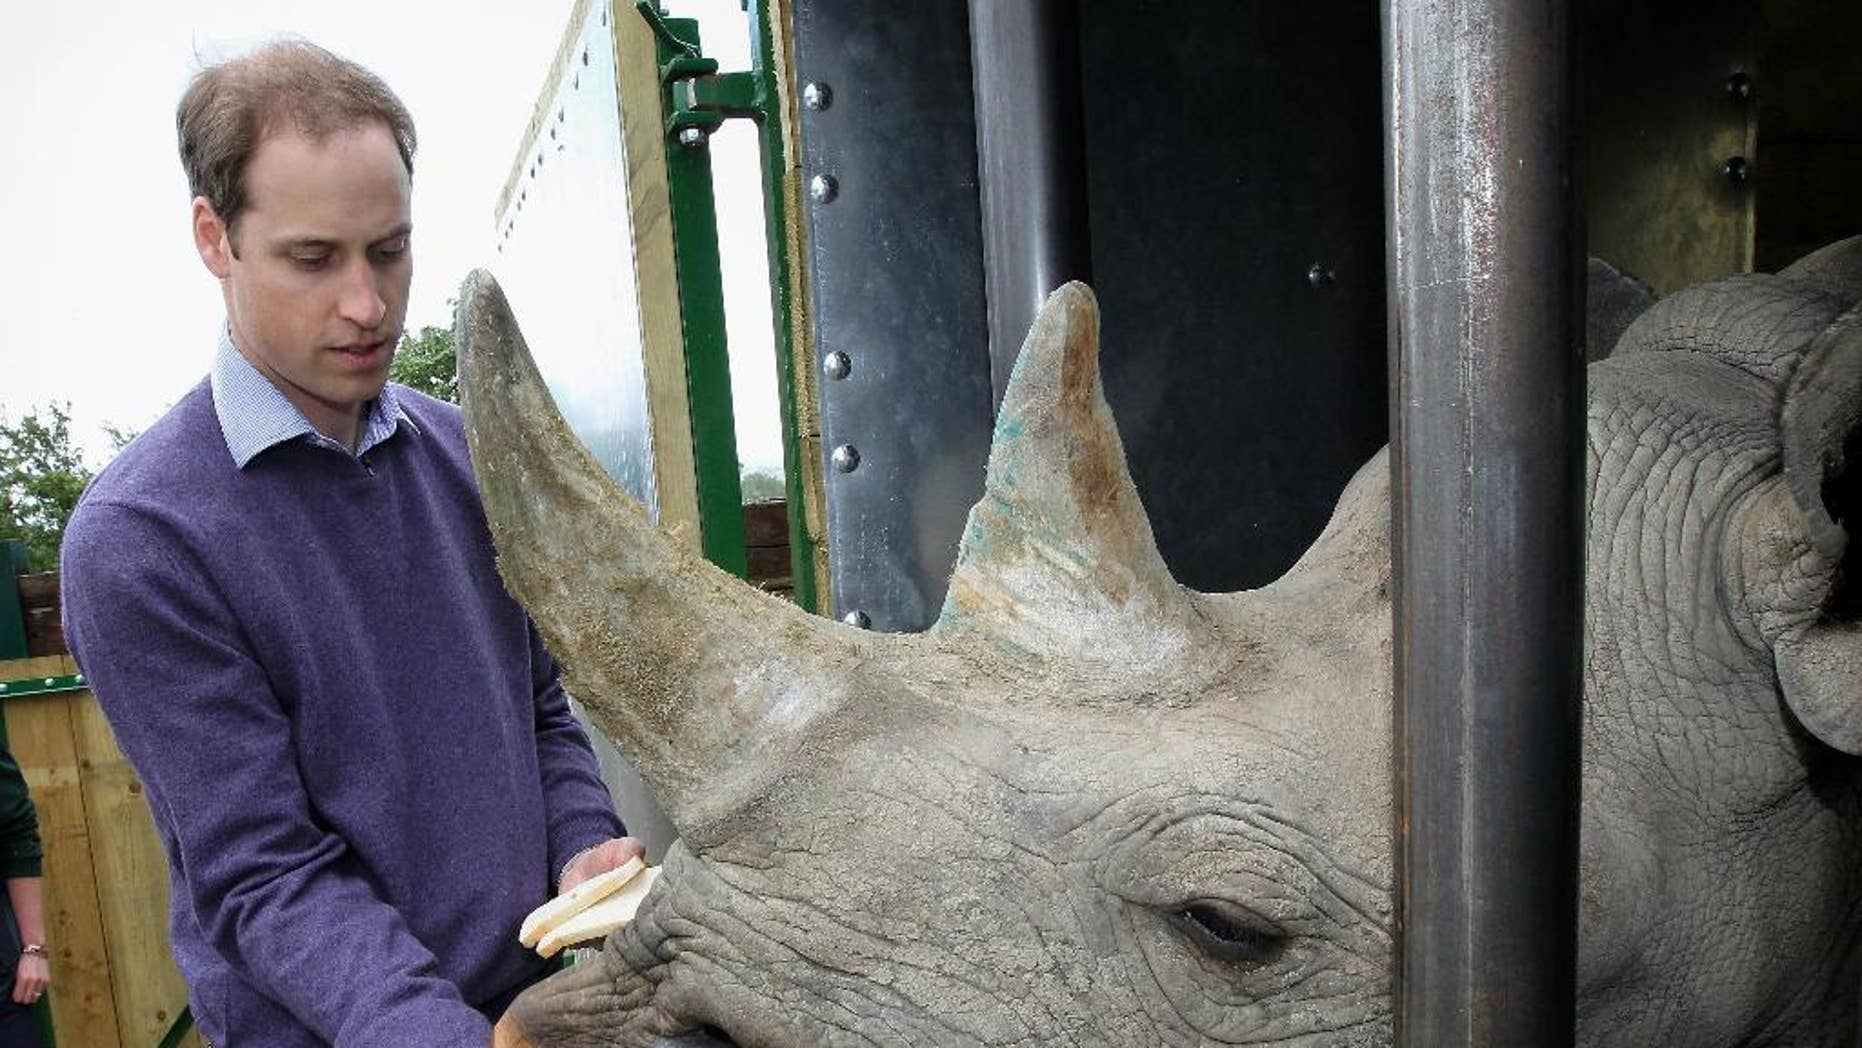 FILE - In this Wednesday June 6, 2012 file photo Britain's Prince William feeds a black rhino called Zawadi as he visits Port Lympne Wild Animal Park in Port Lympne, southern England. The Aspinall Foundation said Sunday Oct. 9, 2016, two critically endangered eastern black rhinos bred in captivity in England have given birth in the wild in Africa. (Chris Jackson/Pool, File)